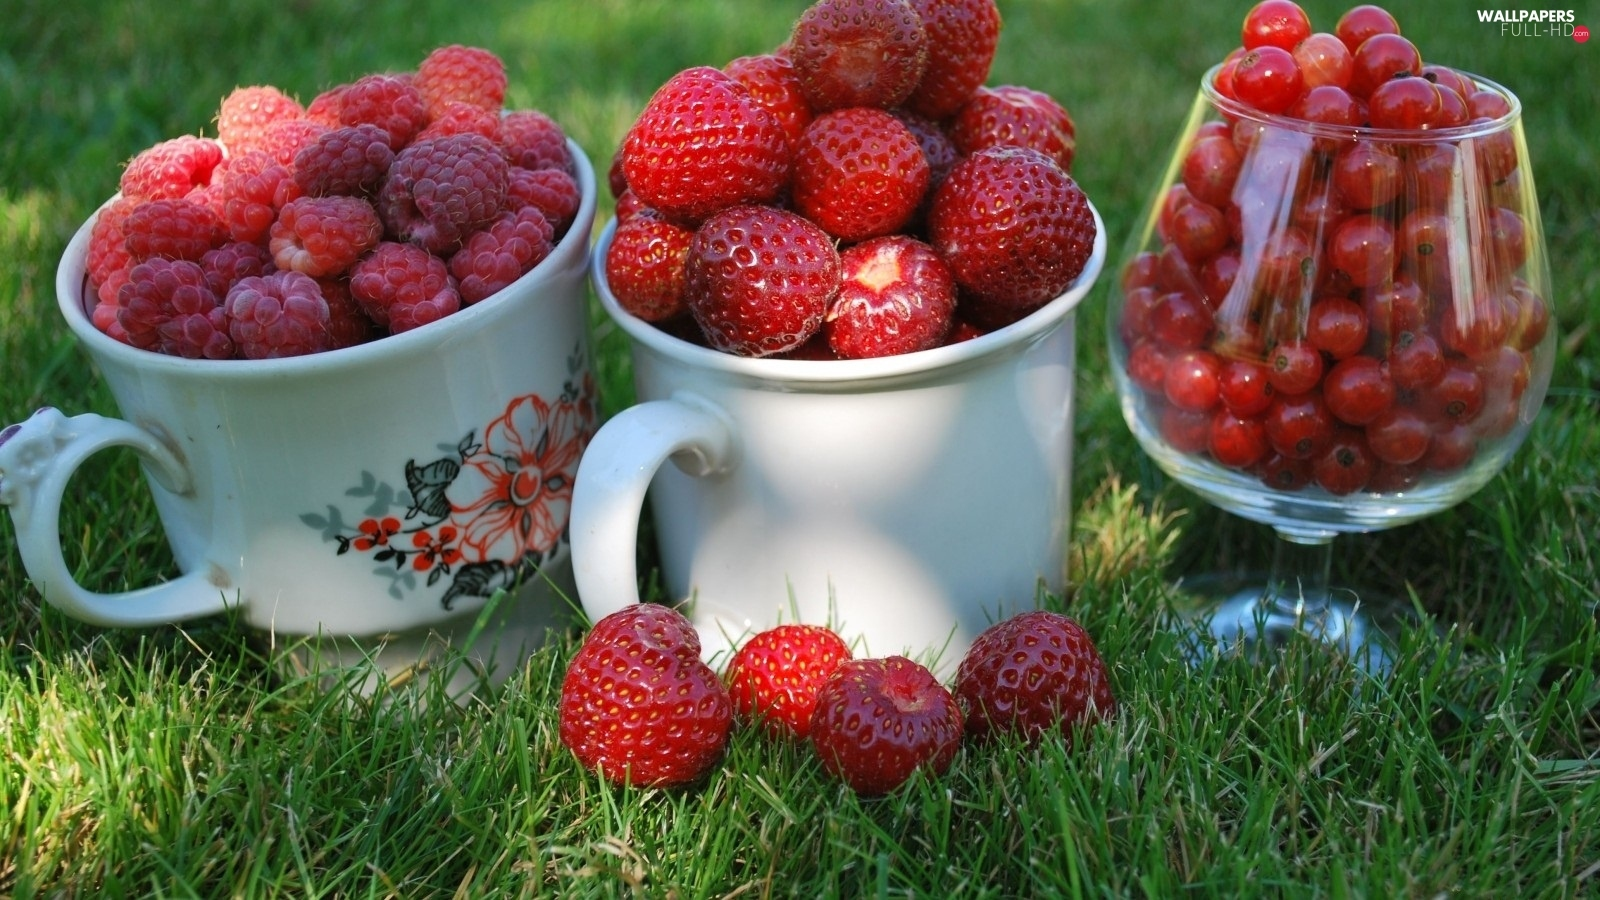 Strawberries, currants, raspberries